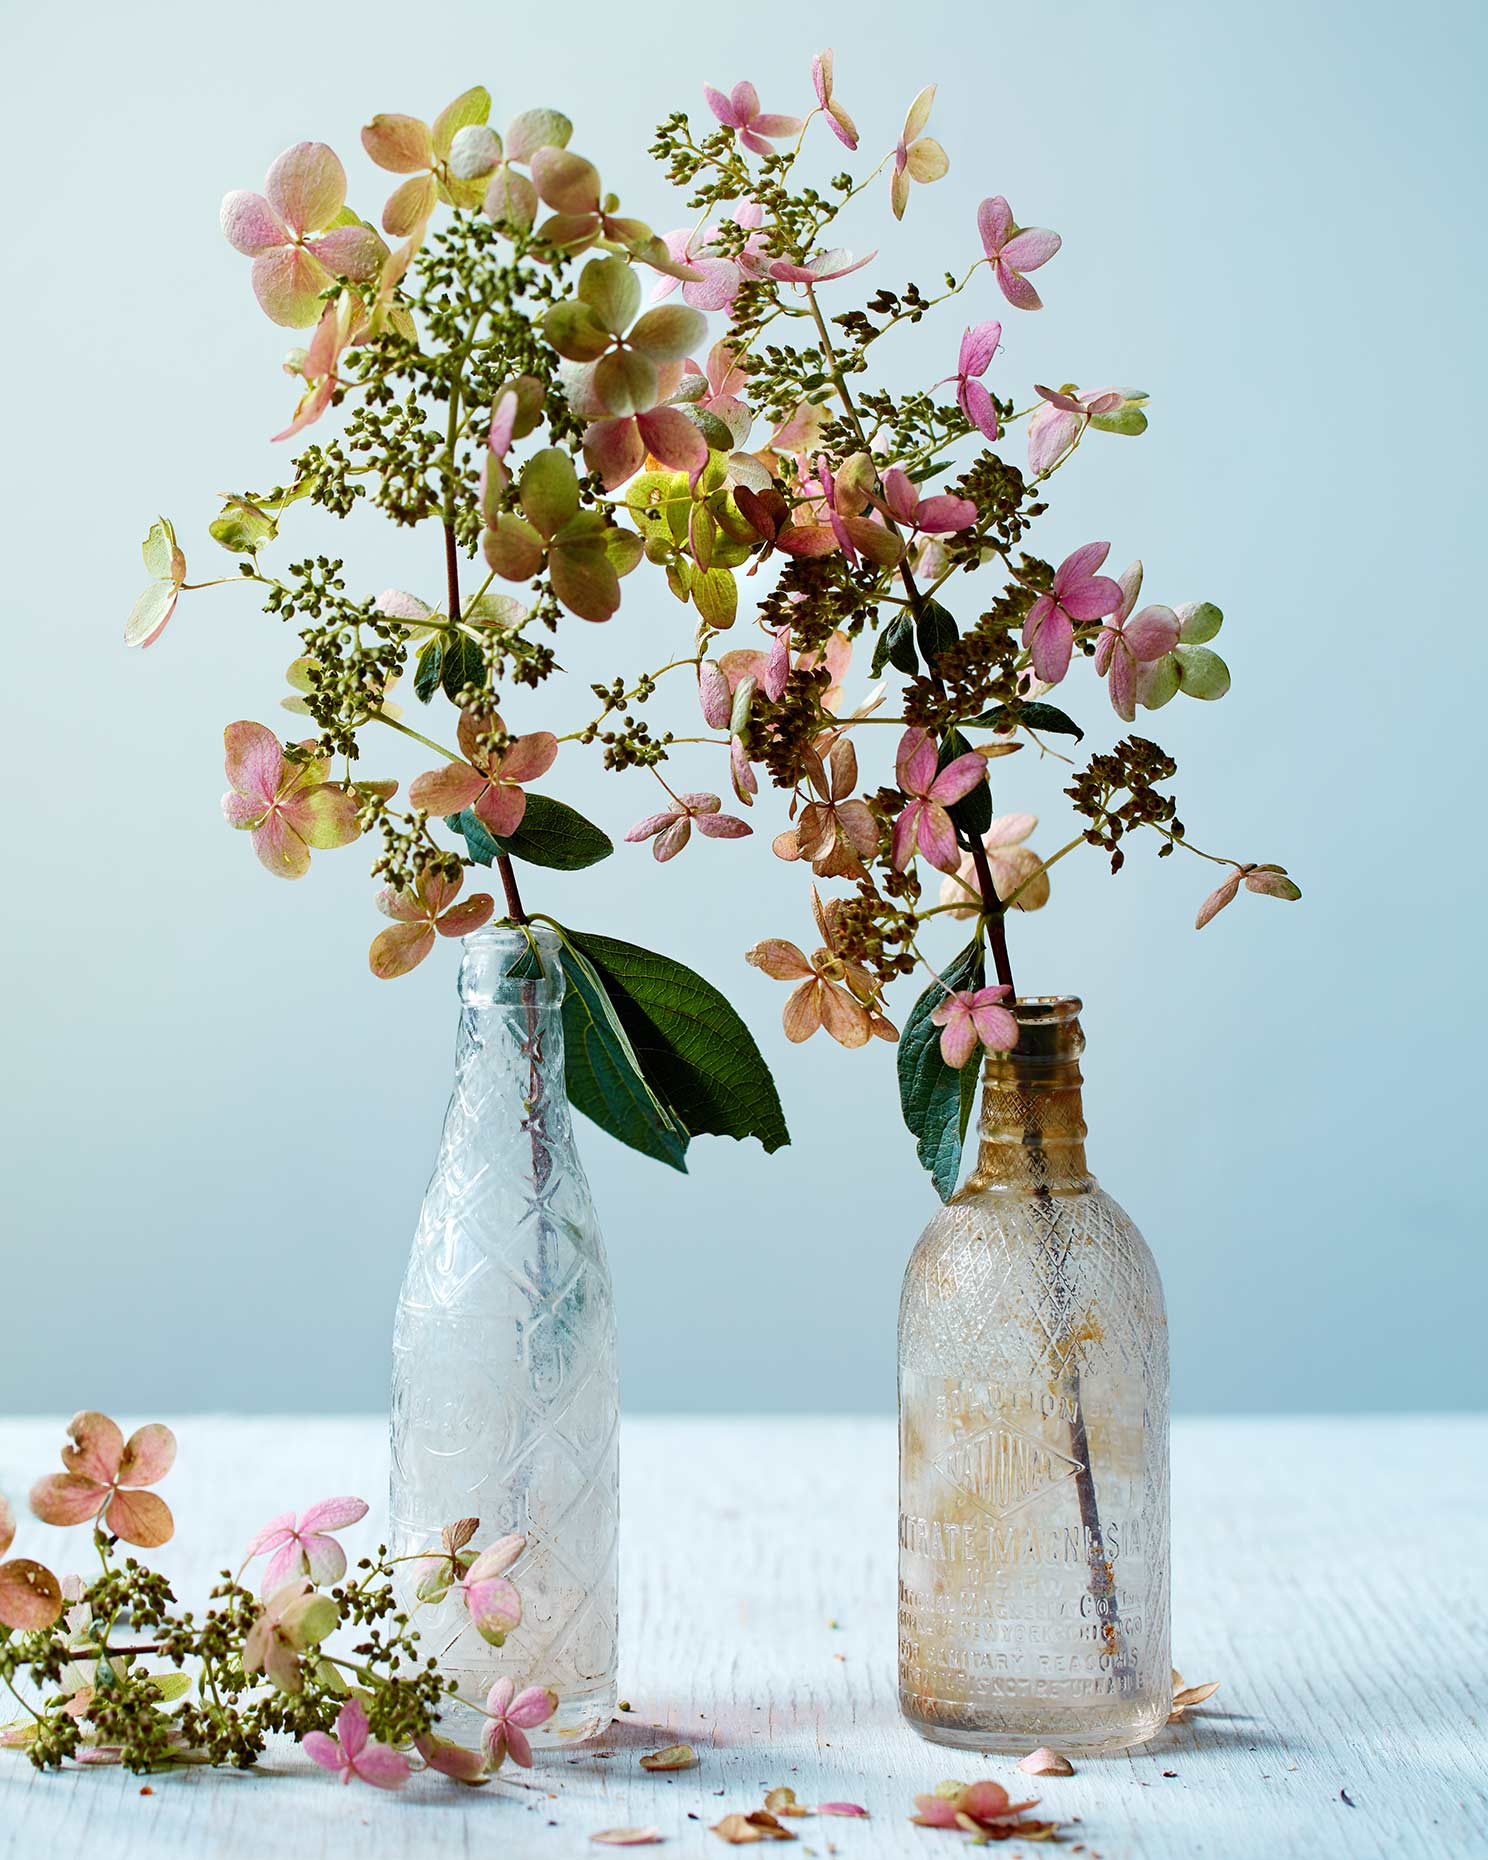 Old colorful flowers in antique bottles.